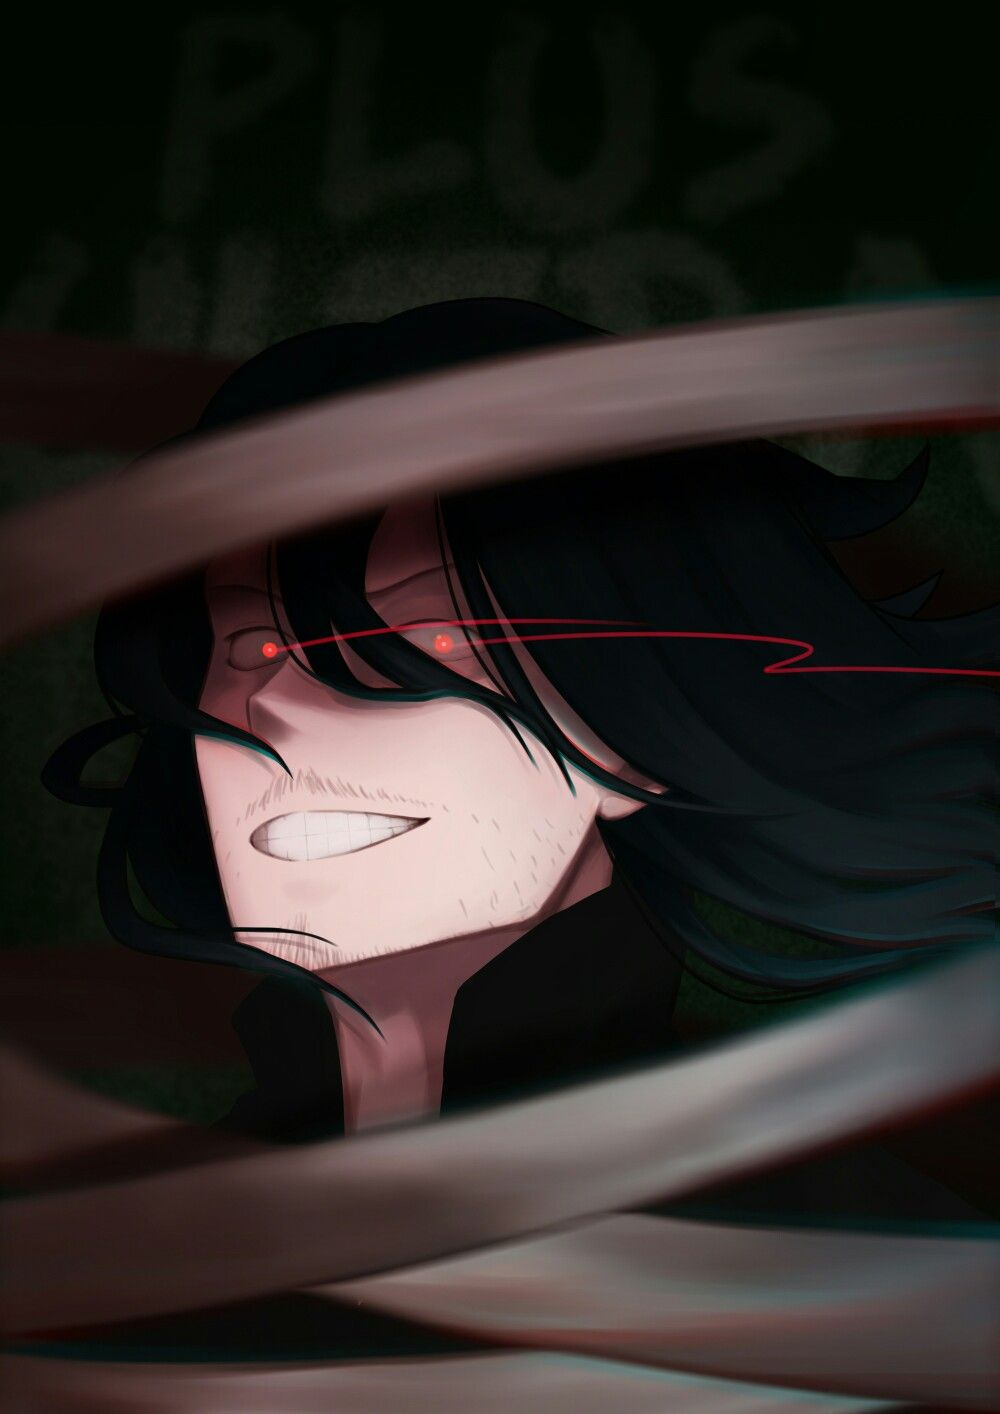 Eraserhead, (my hero academia), minimalist, 4k phone hd wallpapers, images, backgrounds, photos and pictures. Pin by Makishima Crystal on Boku No Hero Academia   My ...